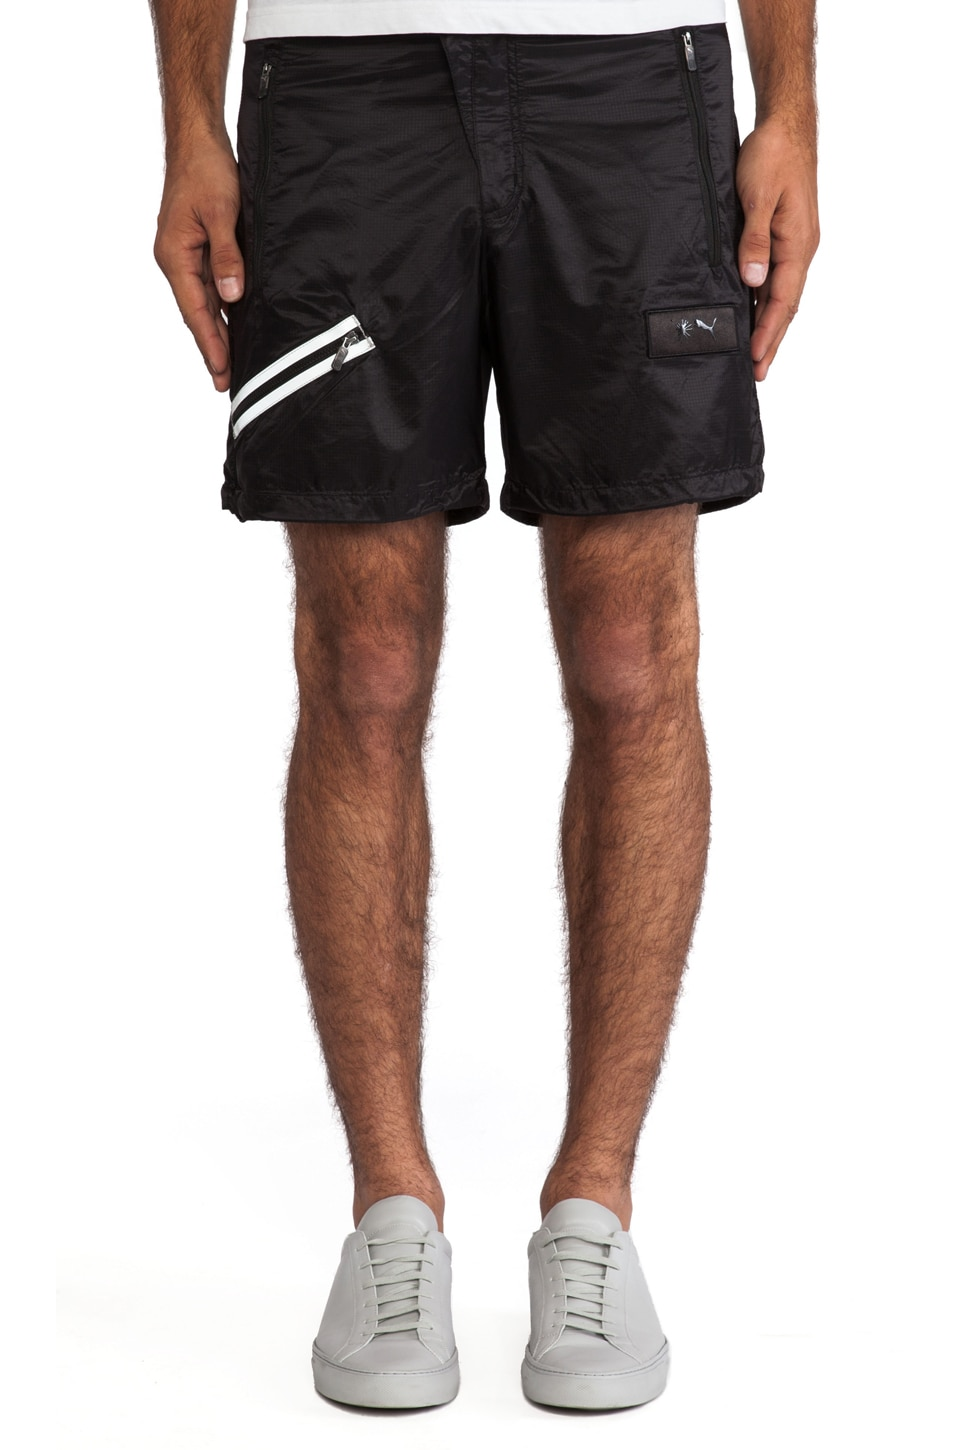 Puma by Mihara Light Weight Short Pants in Black